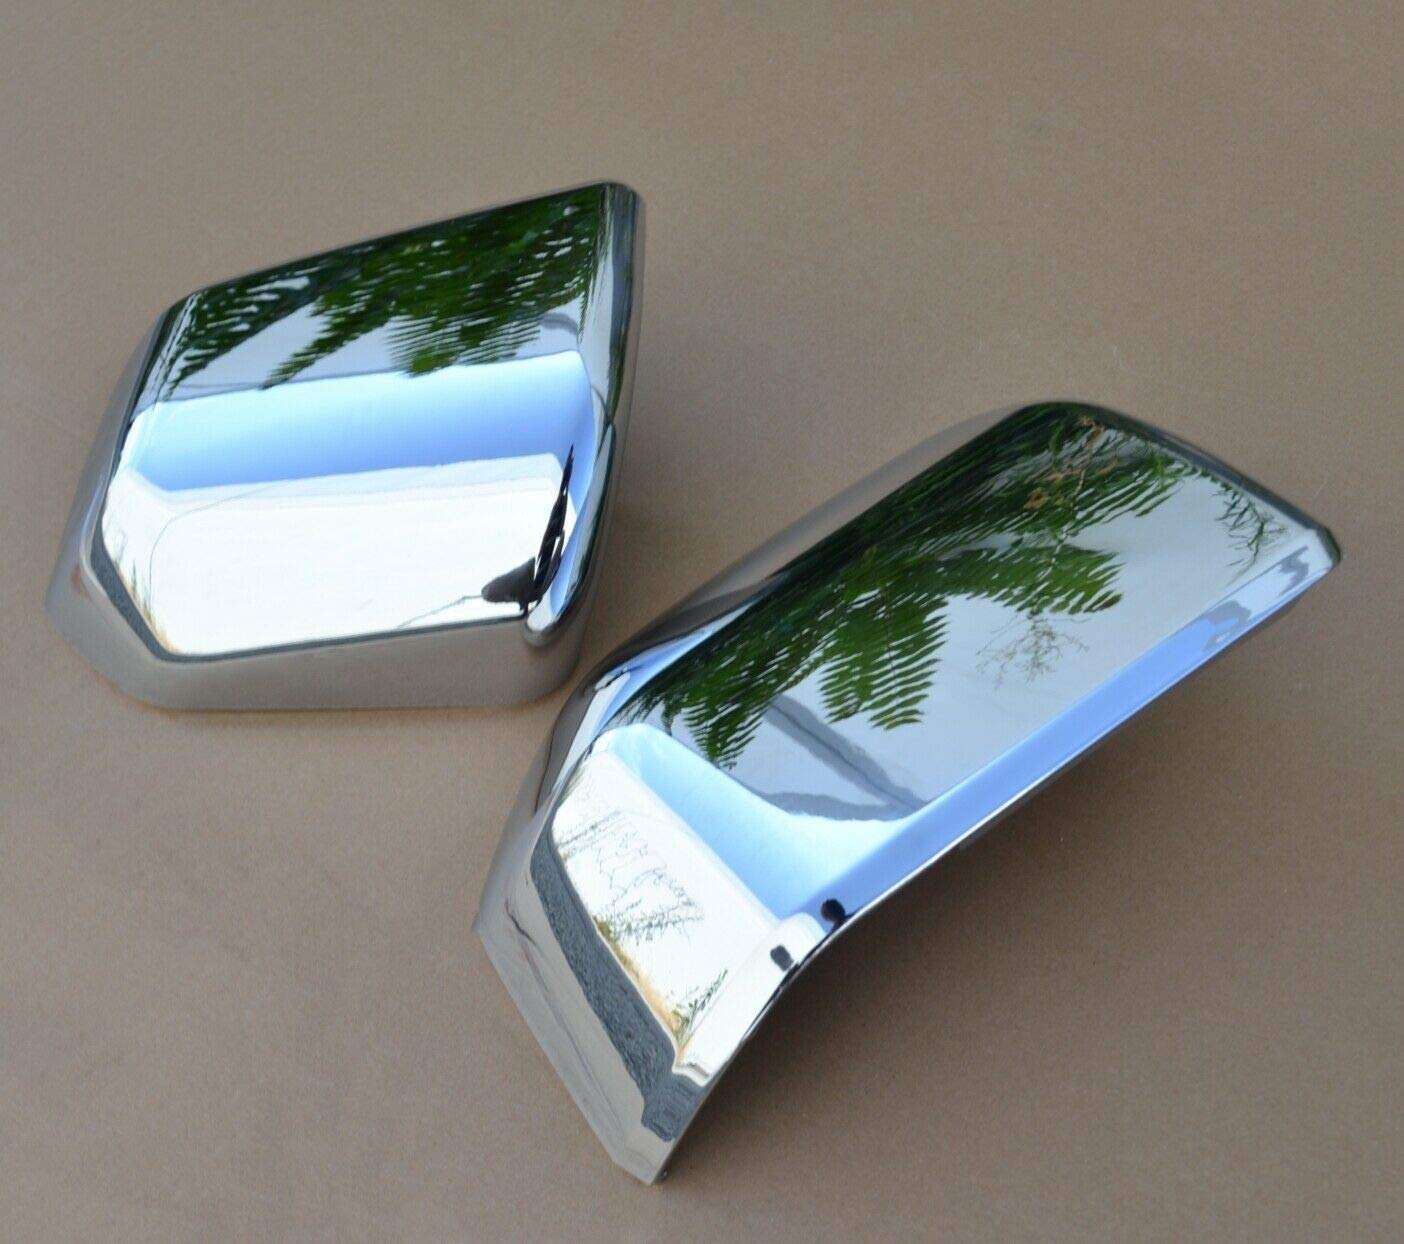 Mirrors Custom Painted Silver Metallic Code UX Mirror Skull Cover Caps For Ford F150 15 16 17 18 19 OE Replacement Door Rear View Upgrade Ingot Silver Metallic-UX